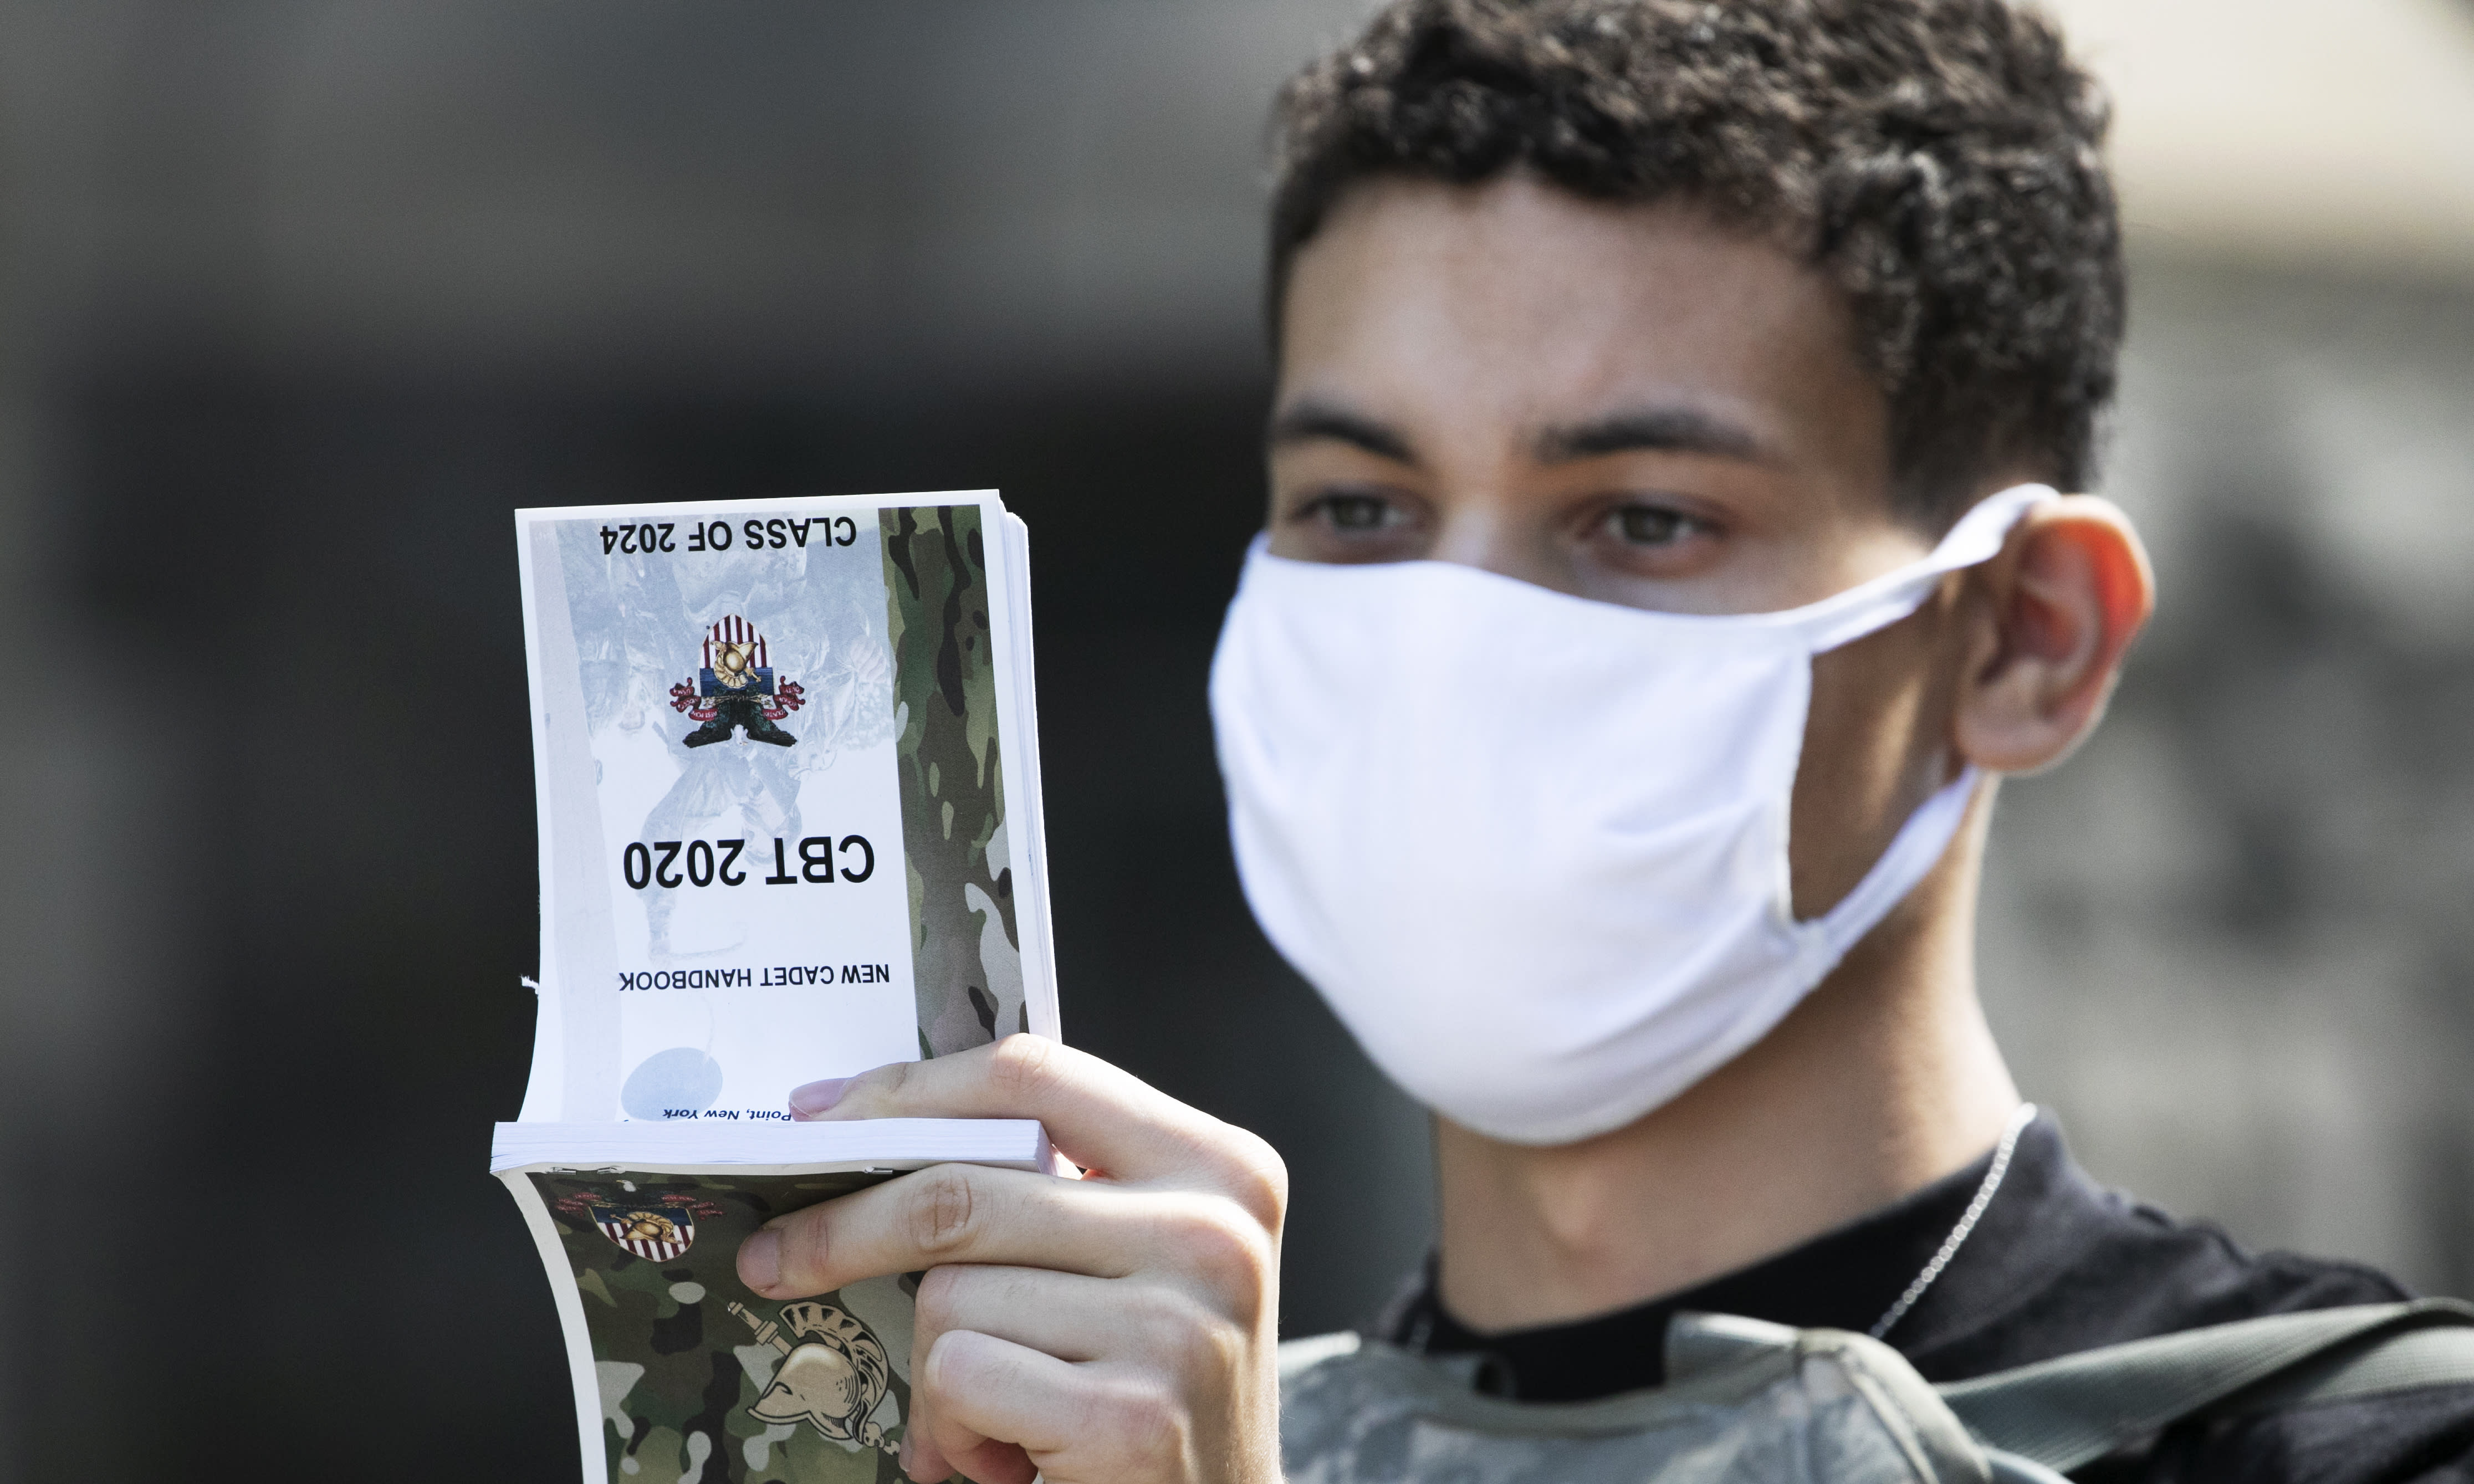 A West Point cadet reads the New Cadet Handbook on his first day at the U.S. Military Academy, Monday, July 13, 2020, in West Point, N.Y. The Army is welcoming more than 1,200 candidates from every state. Candidates will be COVID-19 tested immediately upon arrival, wear masks, and practice social distancing. (AP Photo/Mark Lennihan)